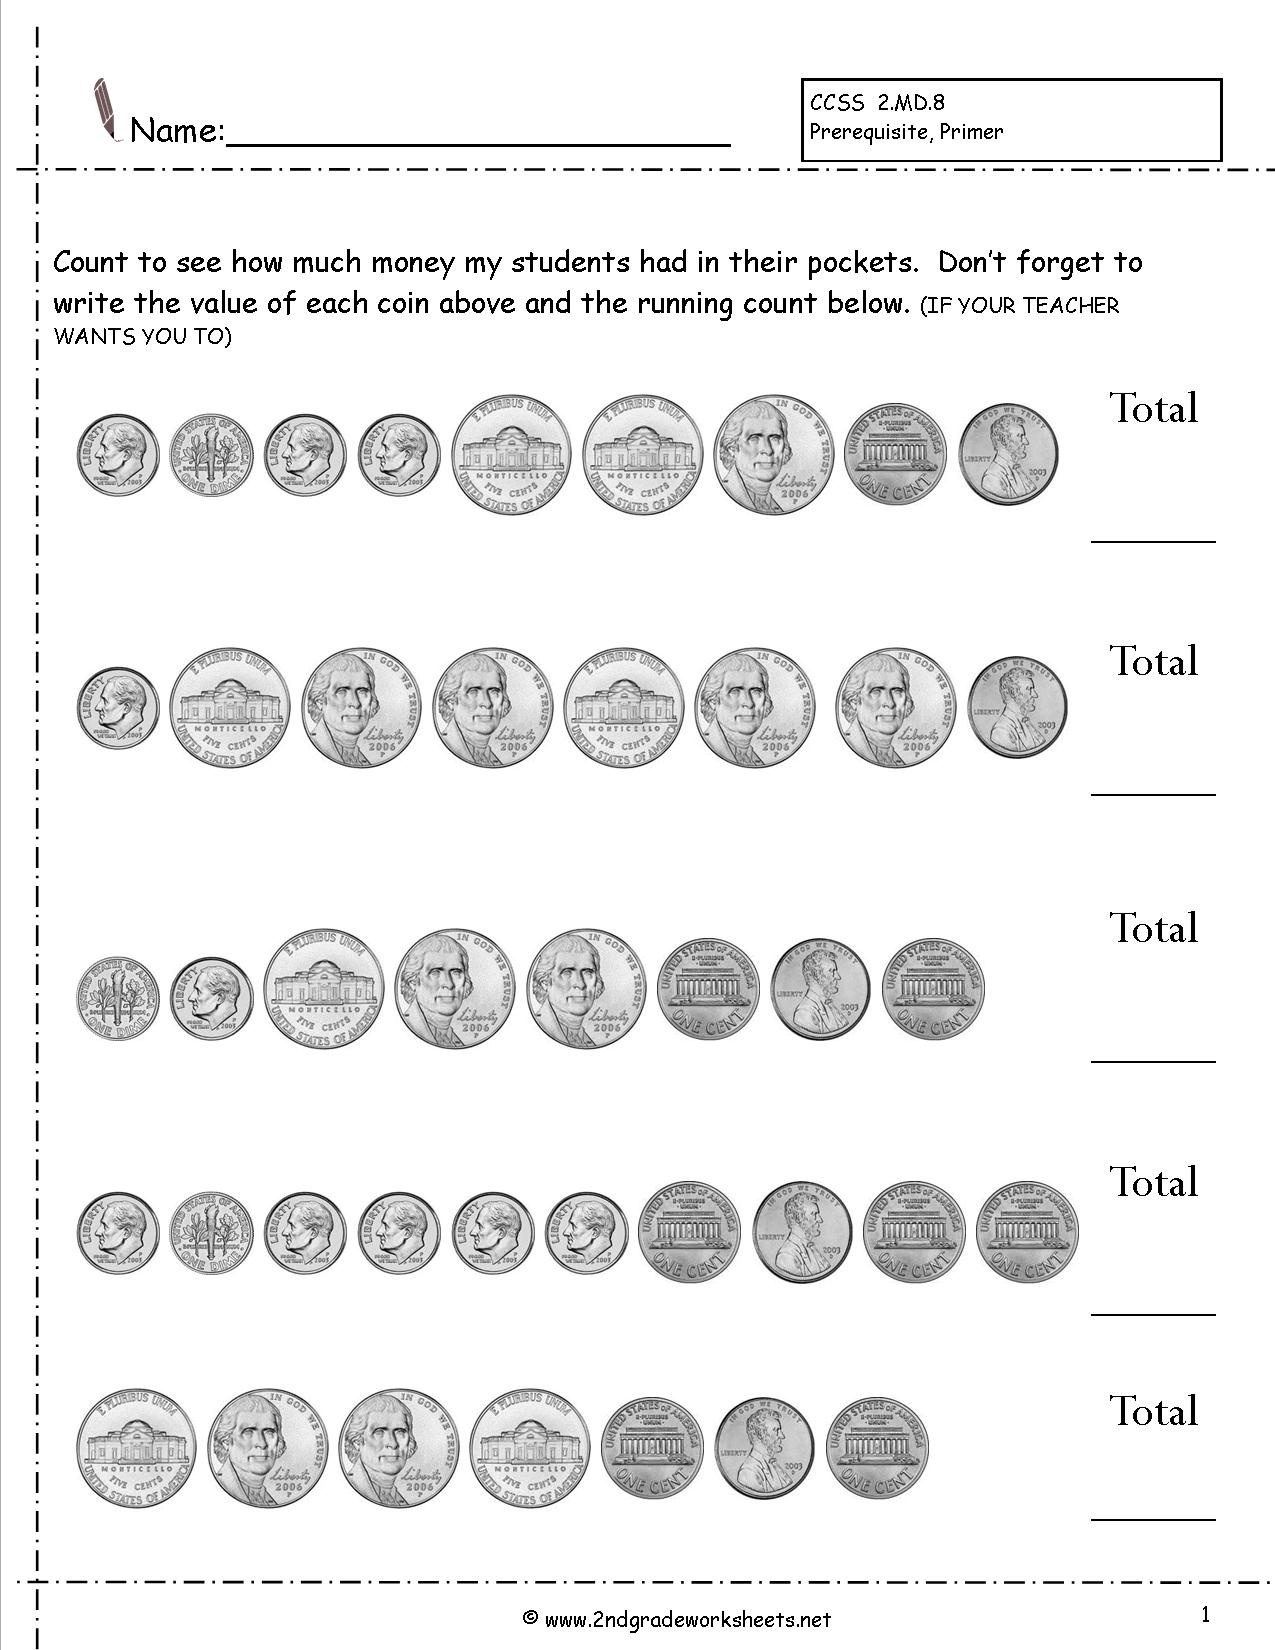 Counting Coins And Money Worksheets And Printouts - Free Printable Money Worksheets